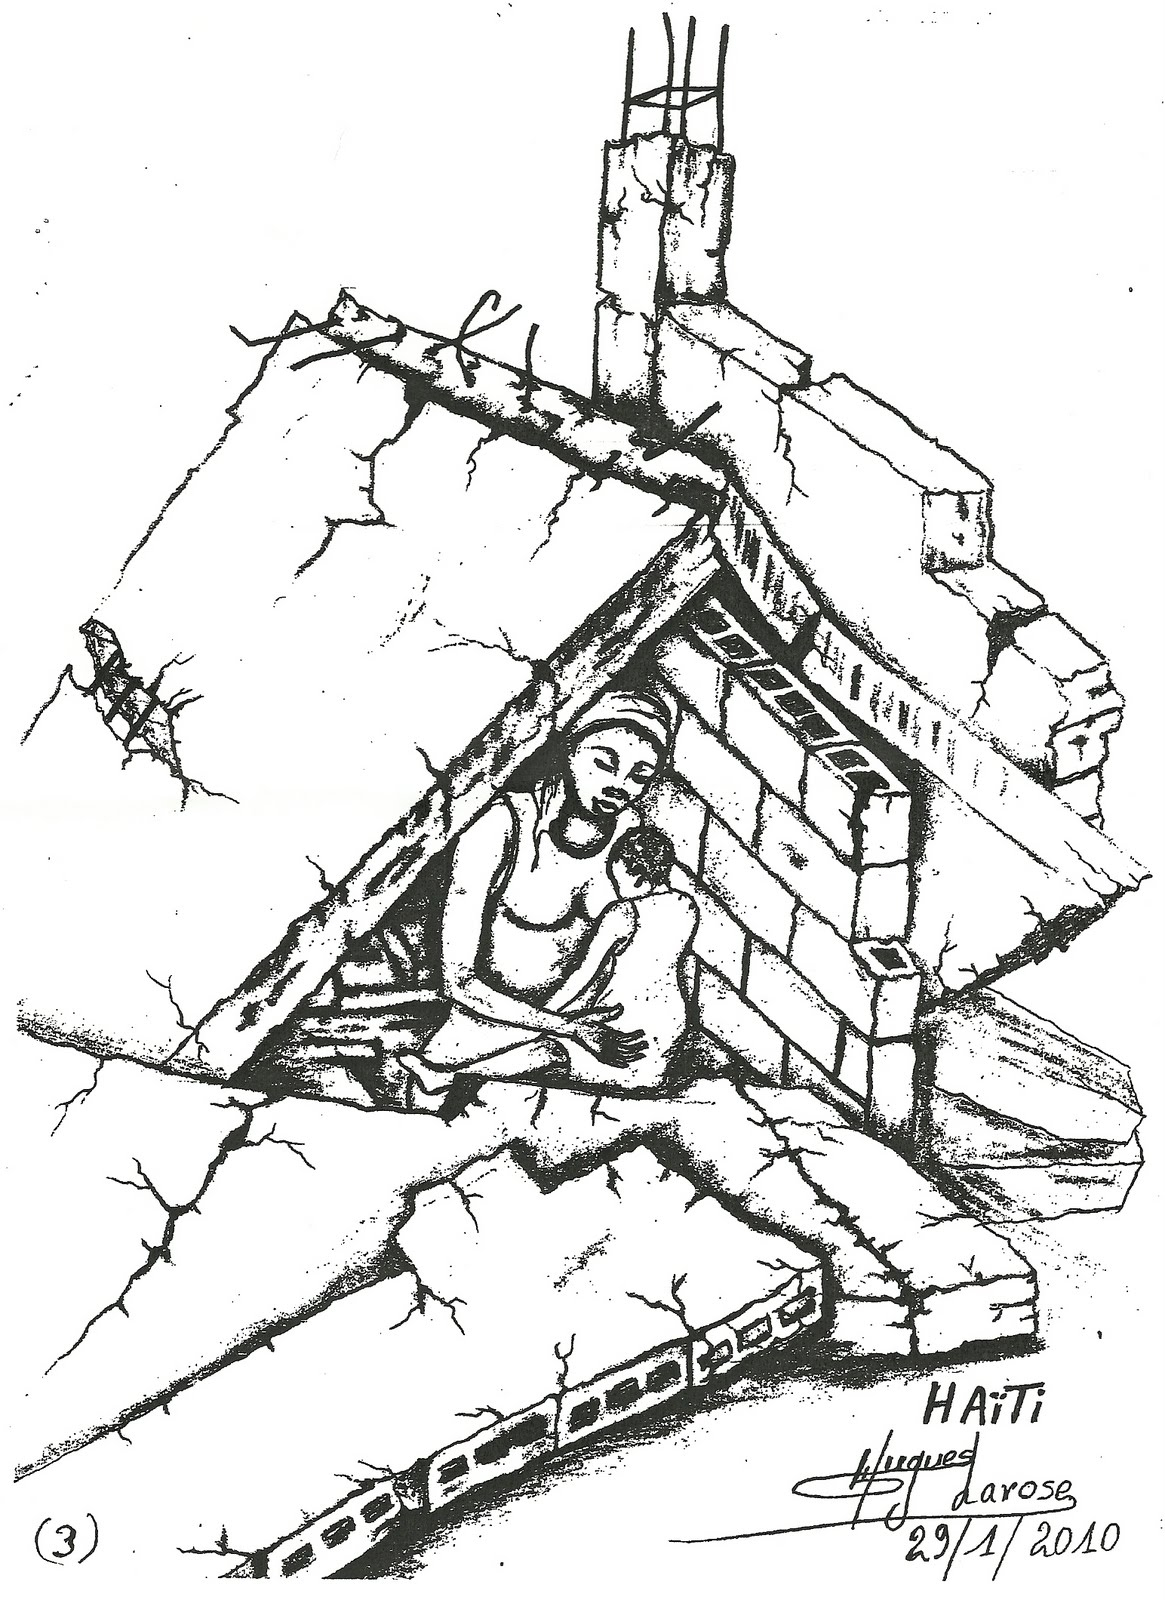 1165x1600 Pencil Sketch Earthquake Natural Disaster Sketch Images